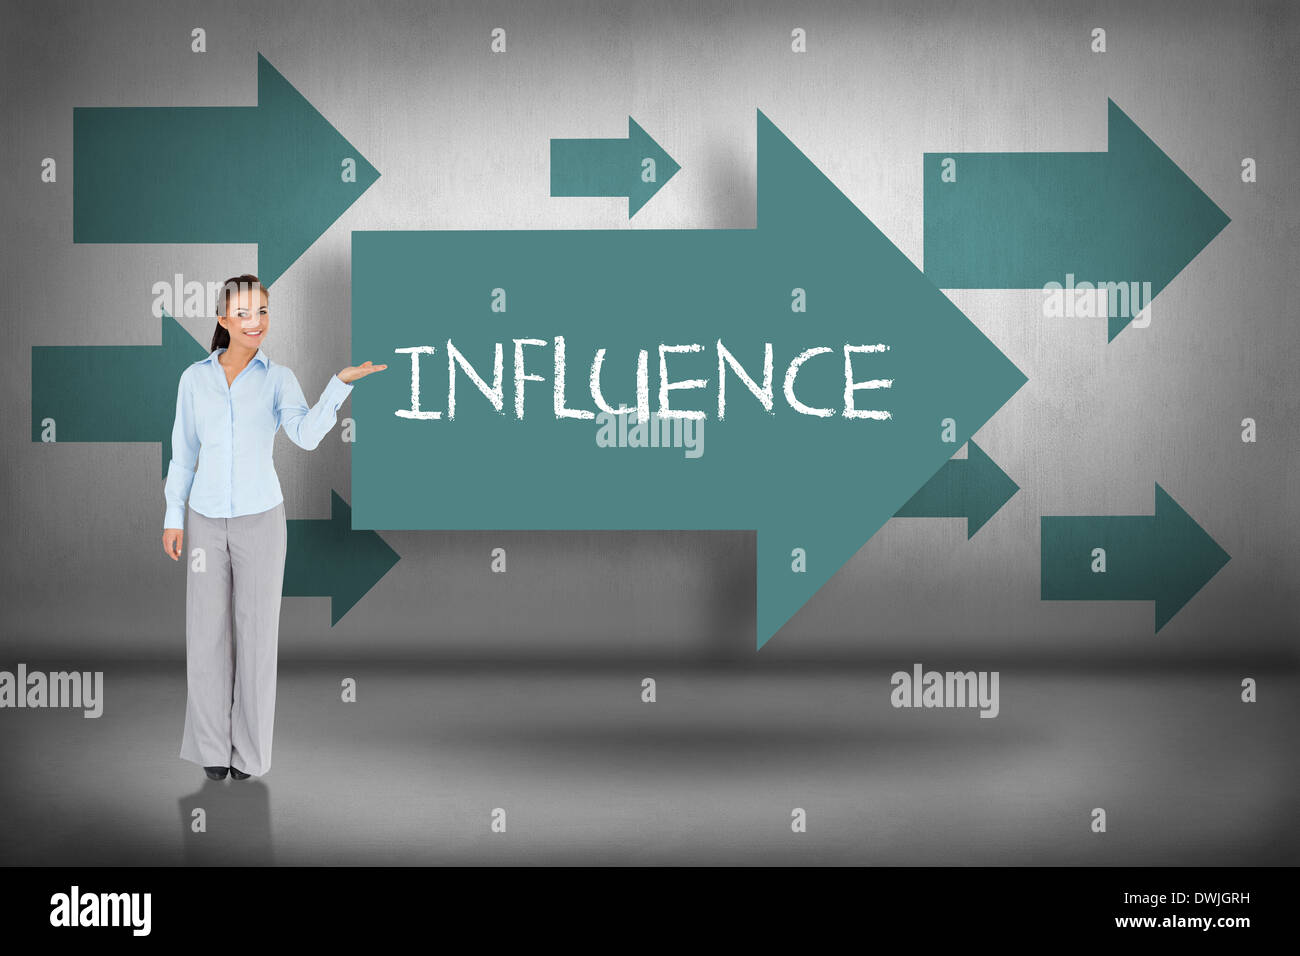 Influence against blue arrows pointing - Stock Image